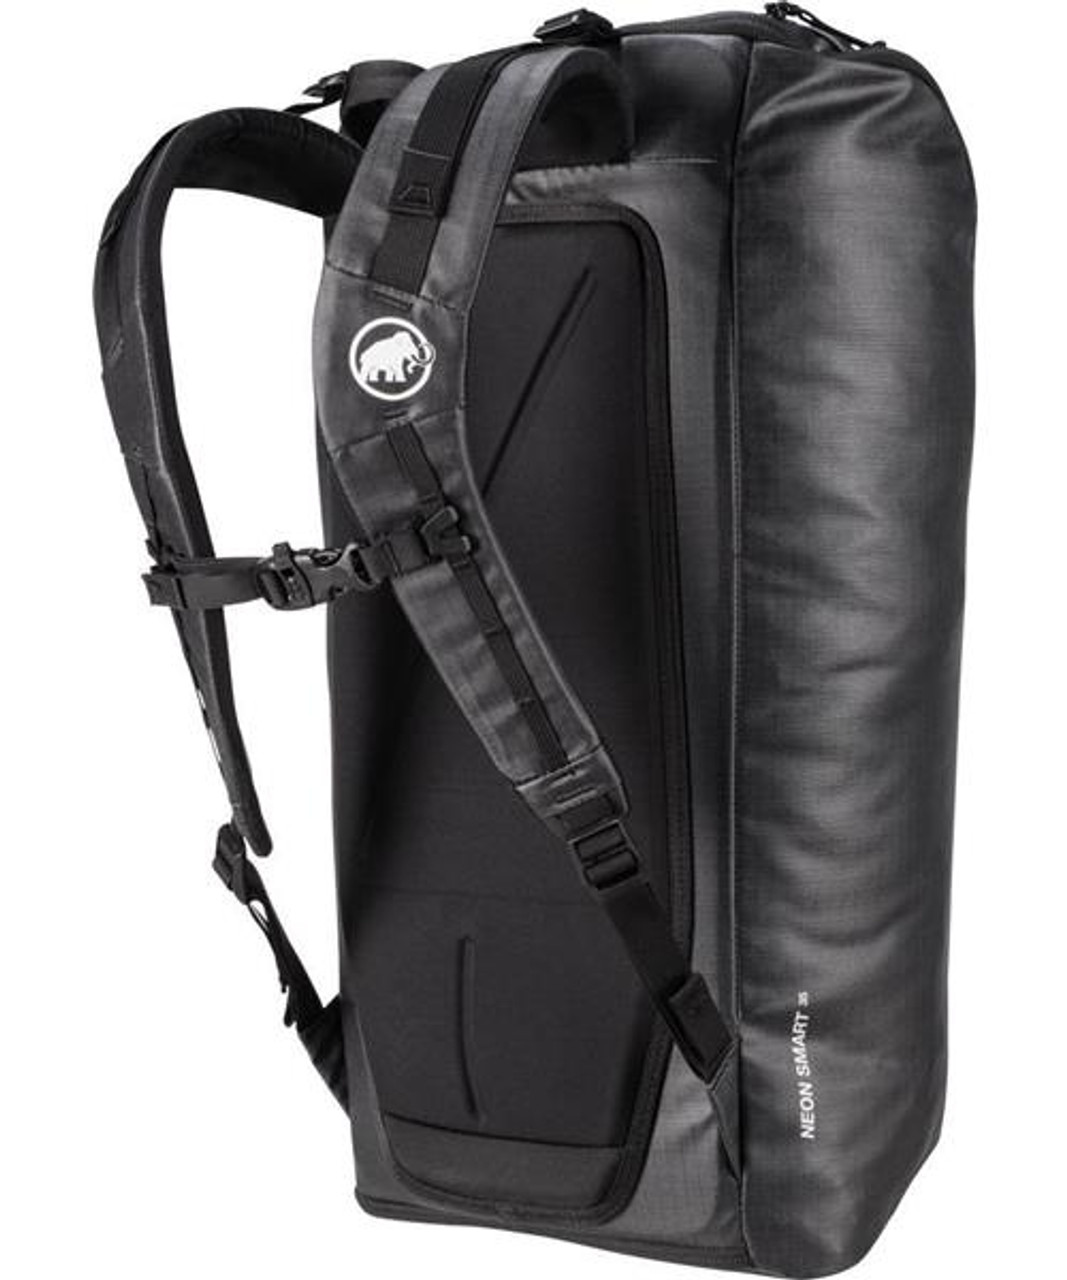 Mammut Neon Smart 35L - Back - Mountain Mail Order South Africa - Black